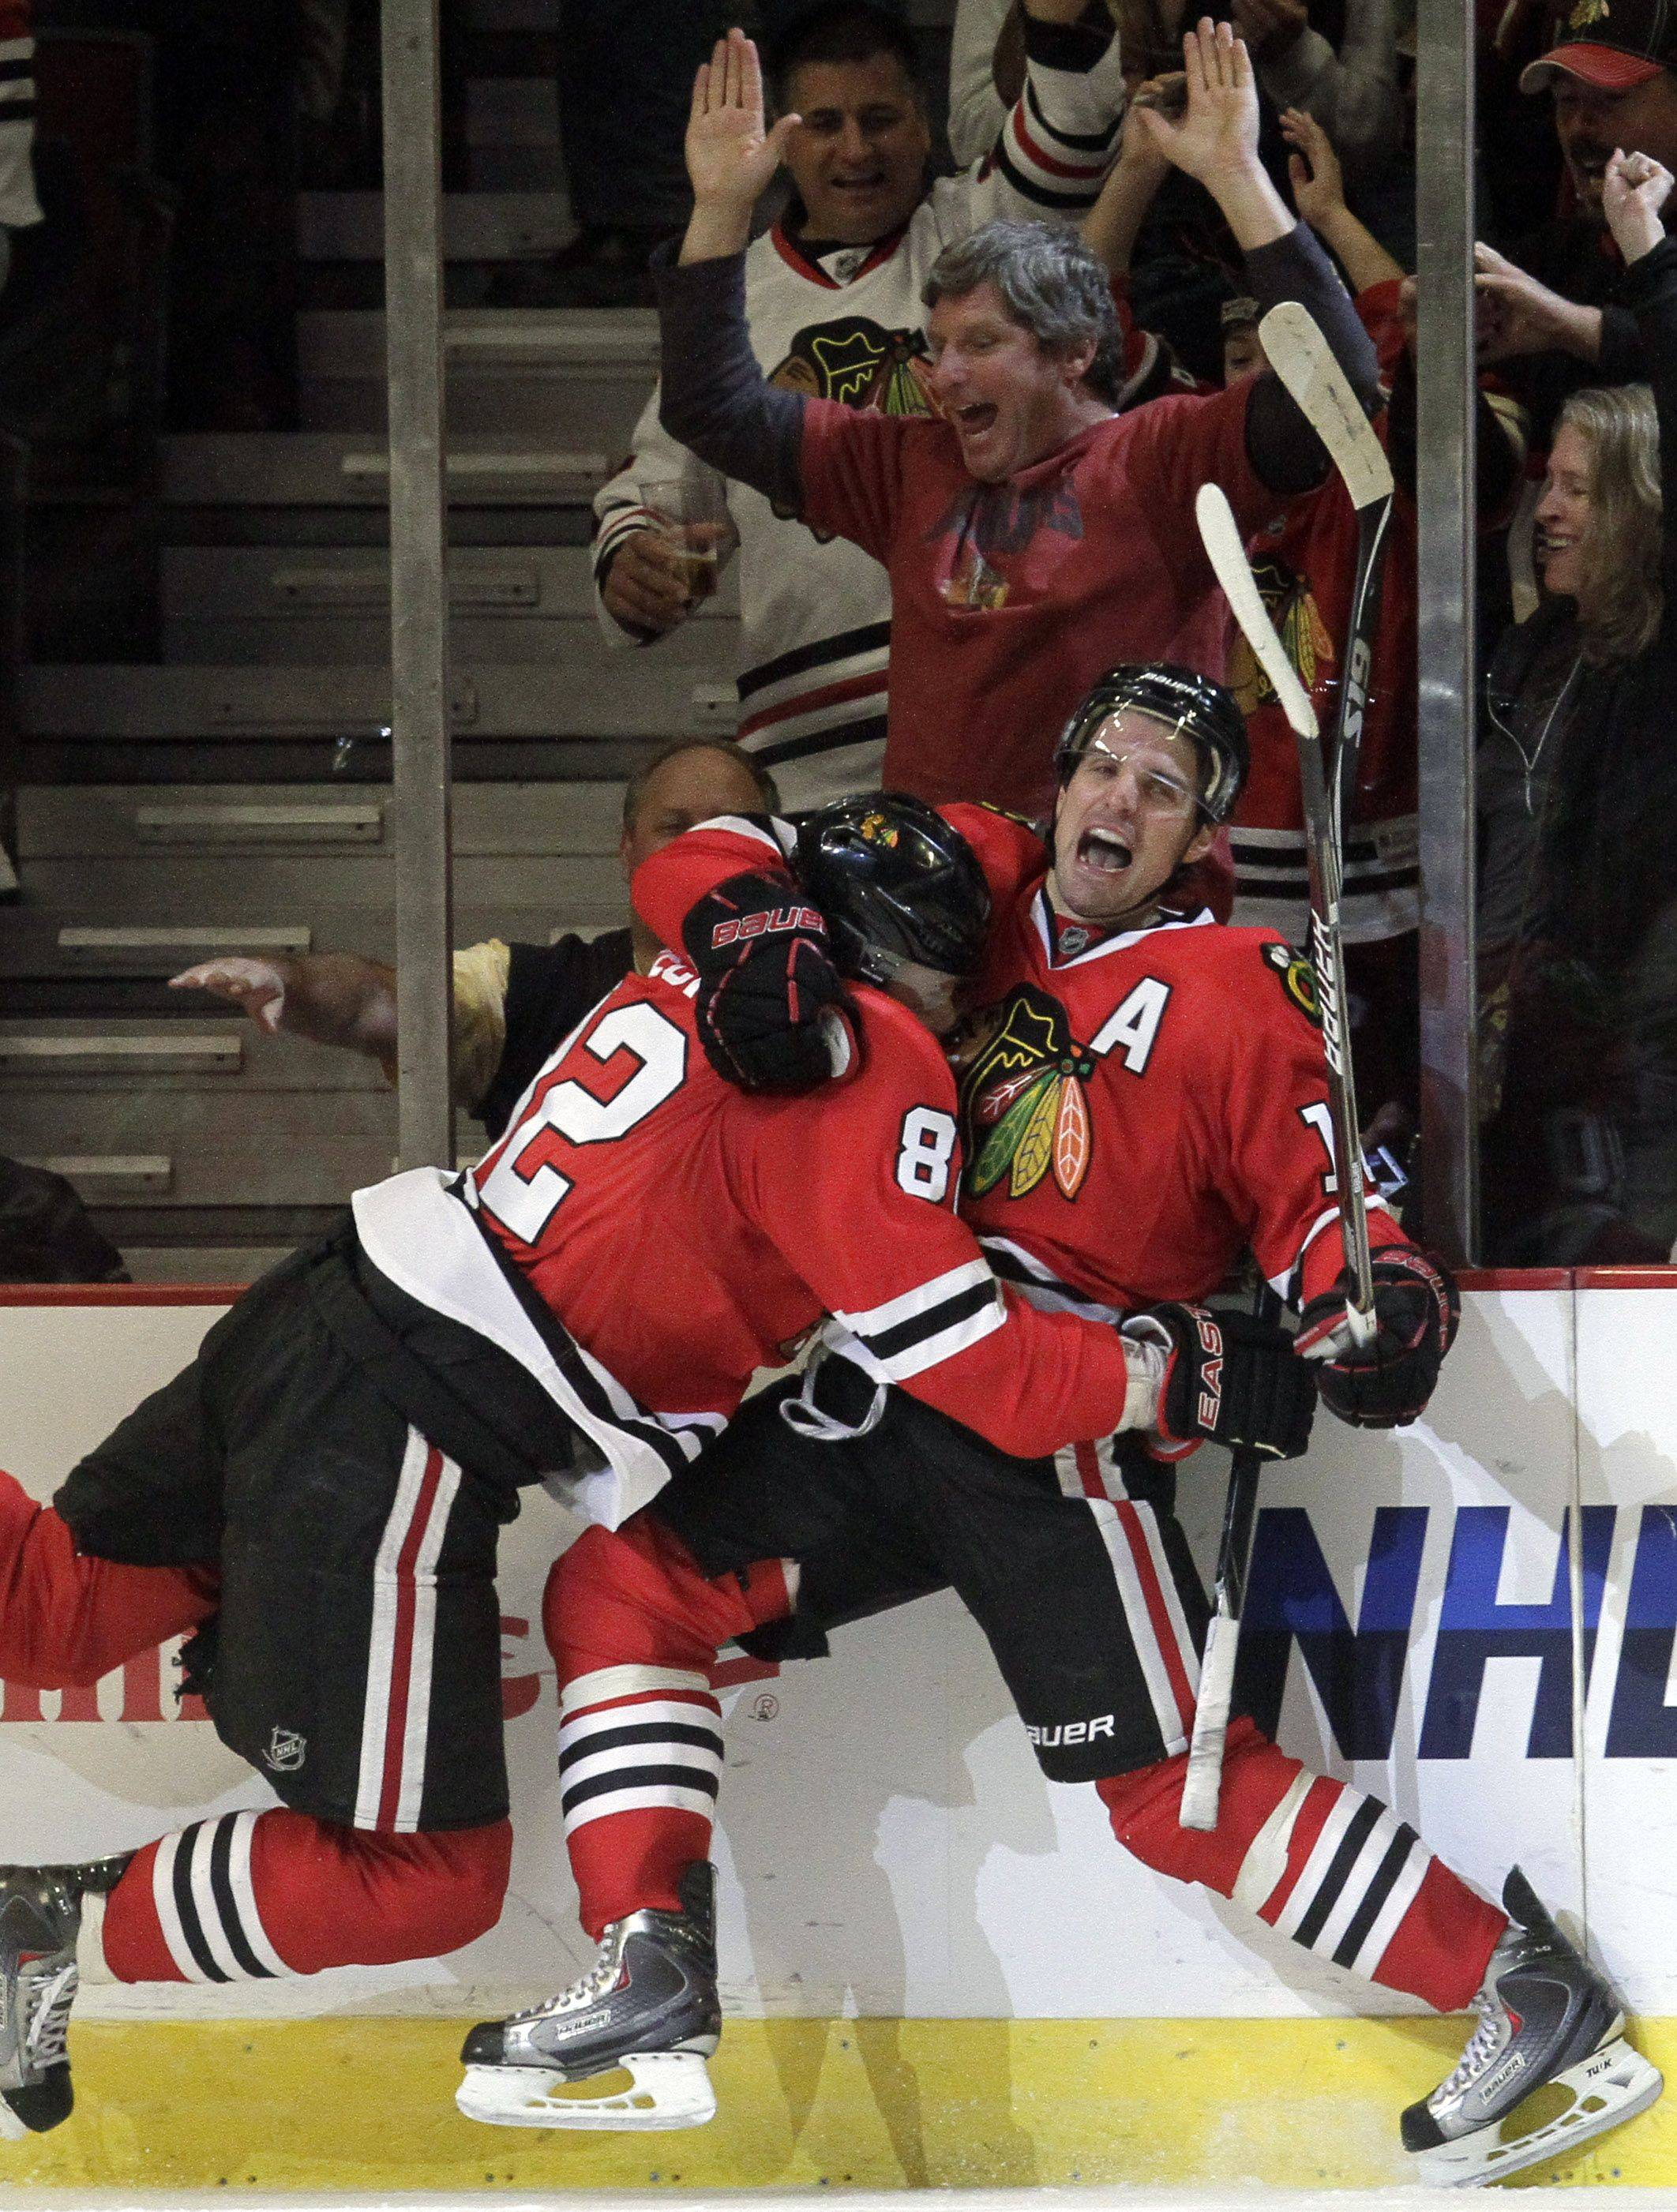 One of the positives in the first half of the Blackhawks season has been the offensive production of Patrick Sharp, right, who celebrated one of his game-winning goals with teammate Tomas Kopecky.